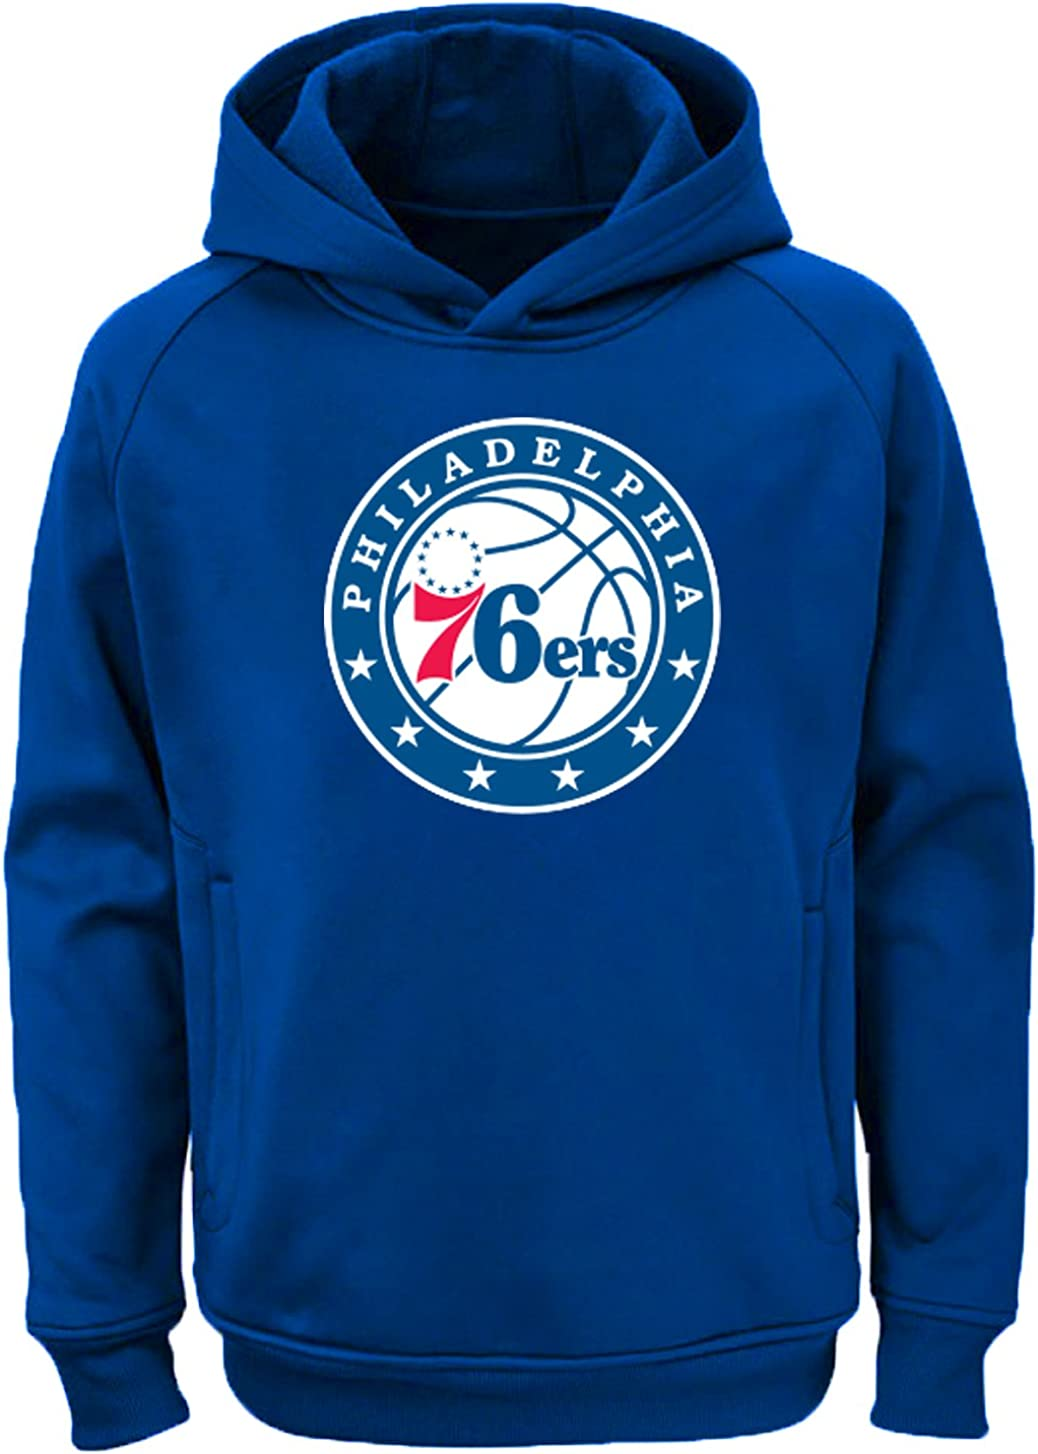 Outerstuff NBA Youth Team Color Performance Primary Logo Pullover Sweatshirt Hoodie